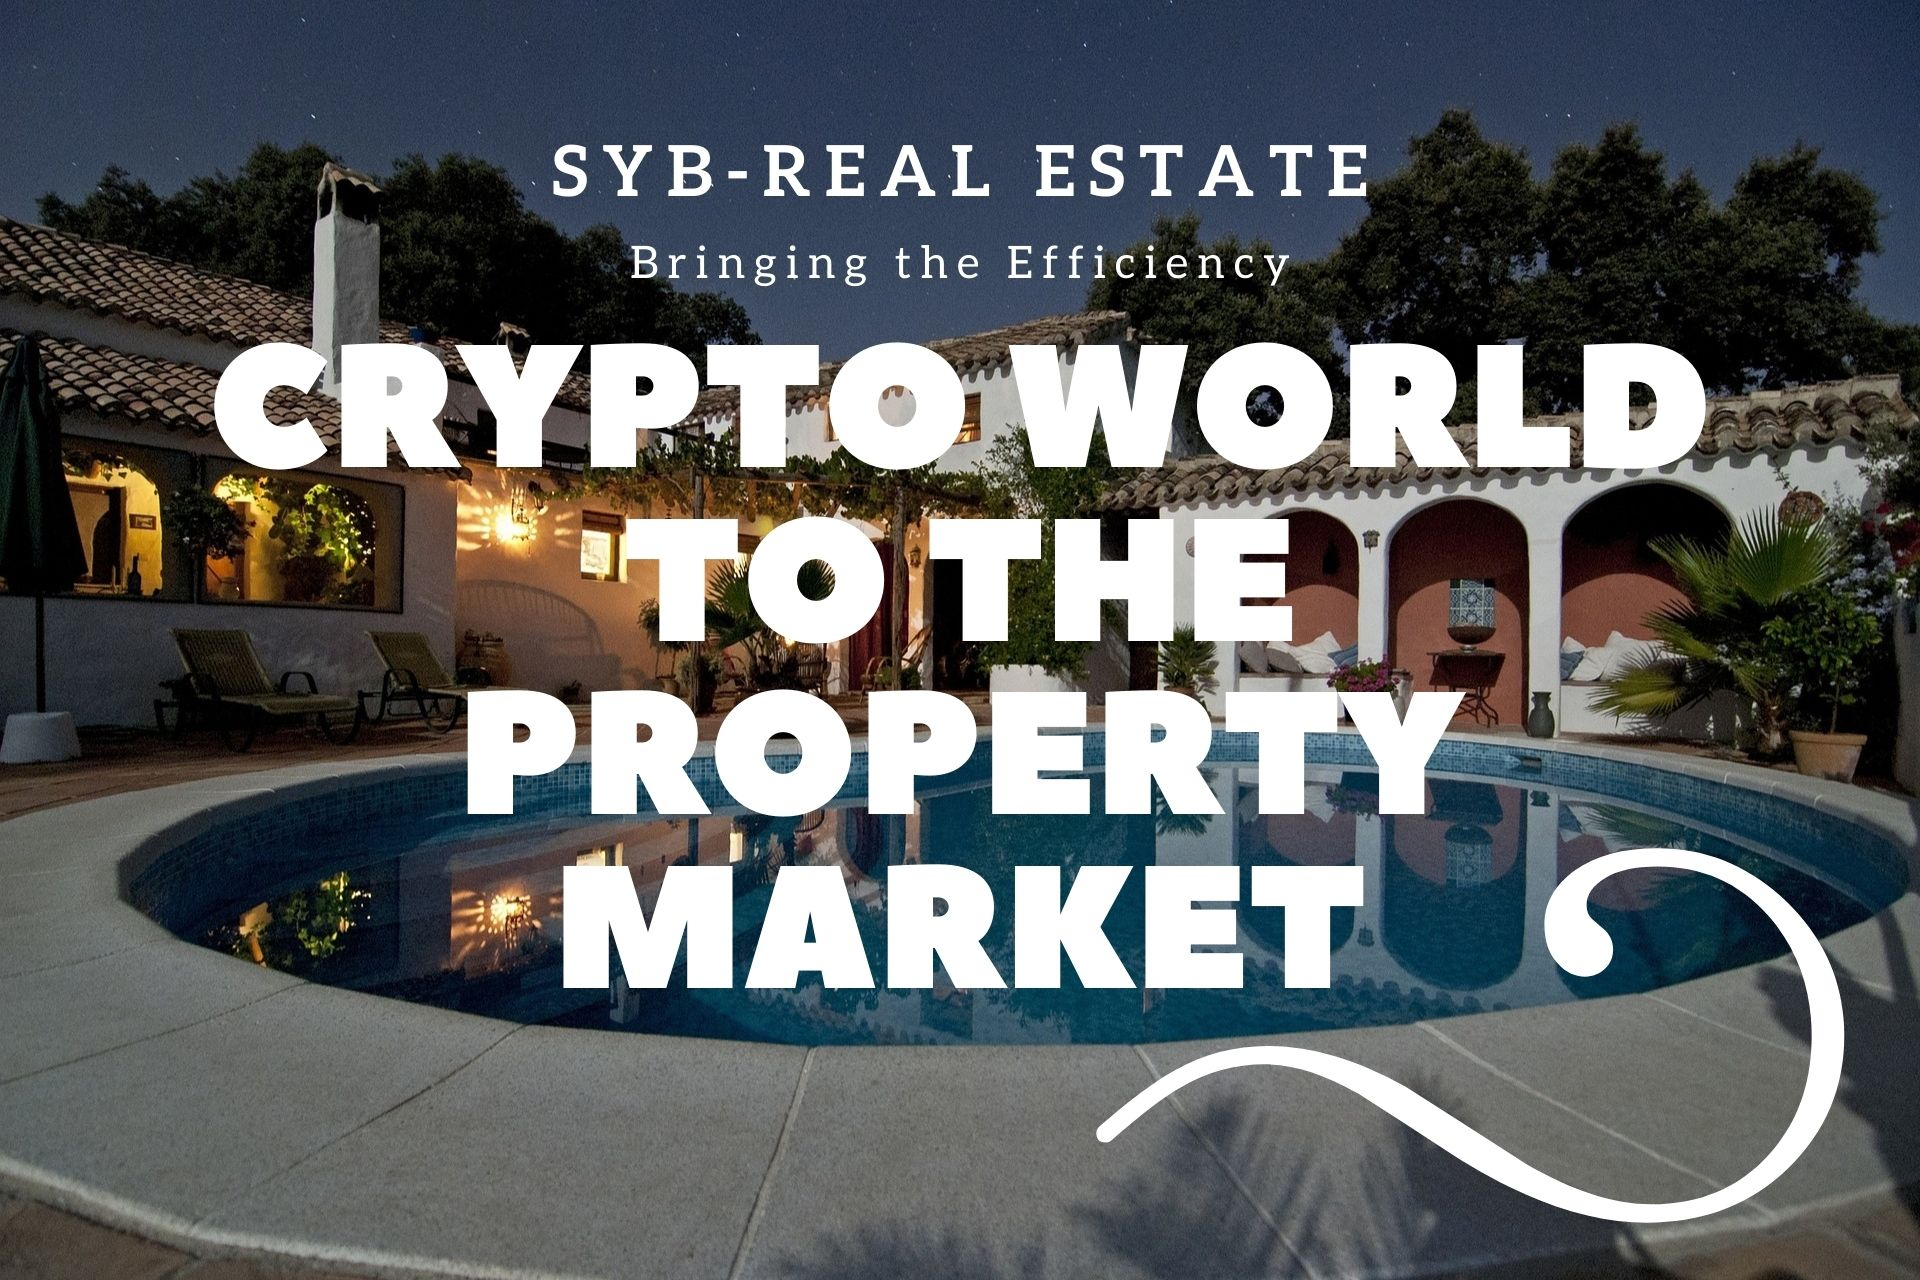 SYB Real Estate Marketplace: Bringing the Efficiency of the Crypto World to the Property Market